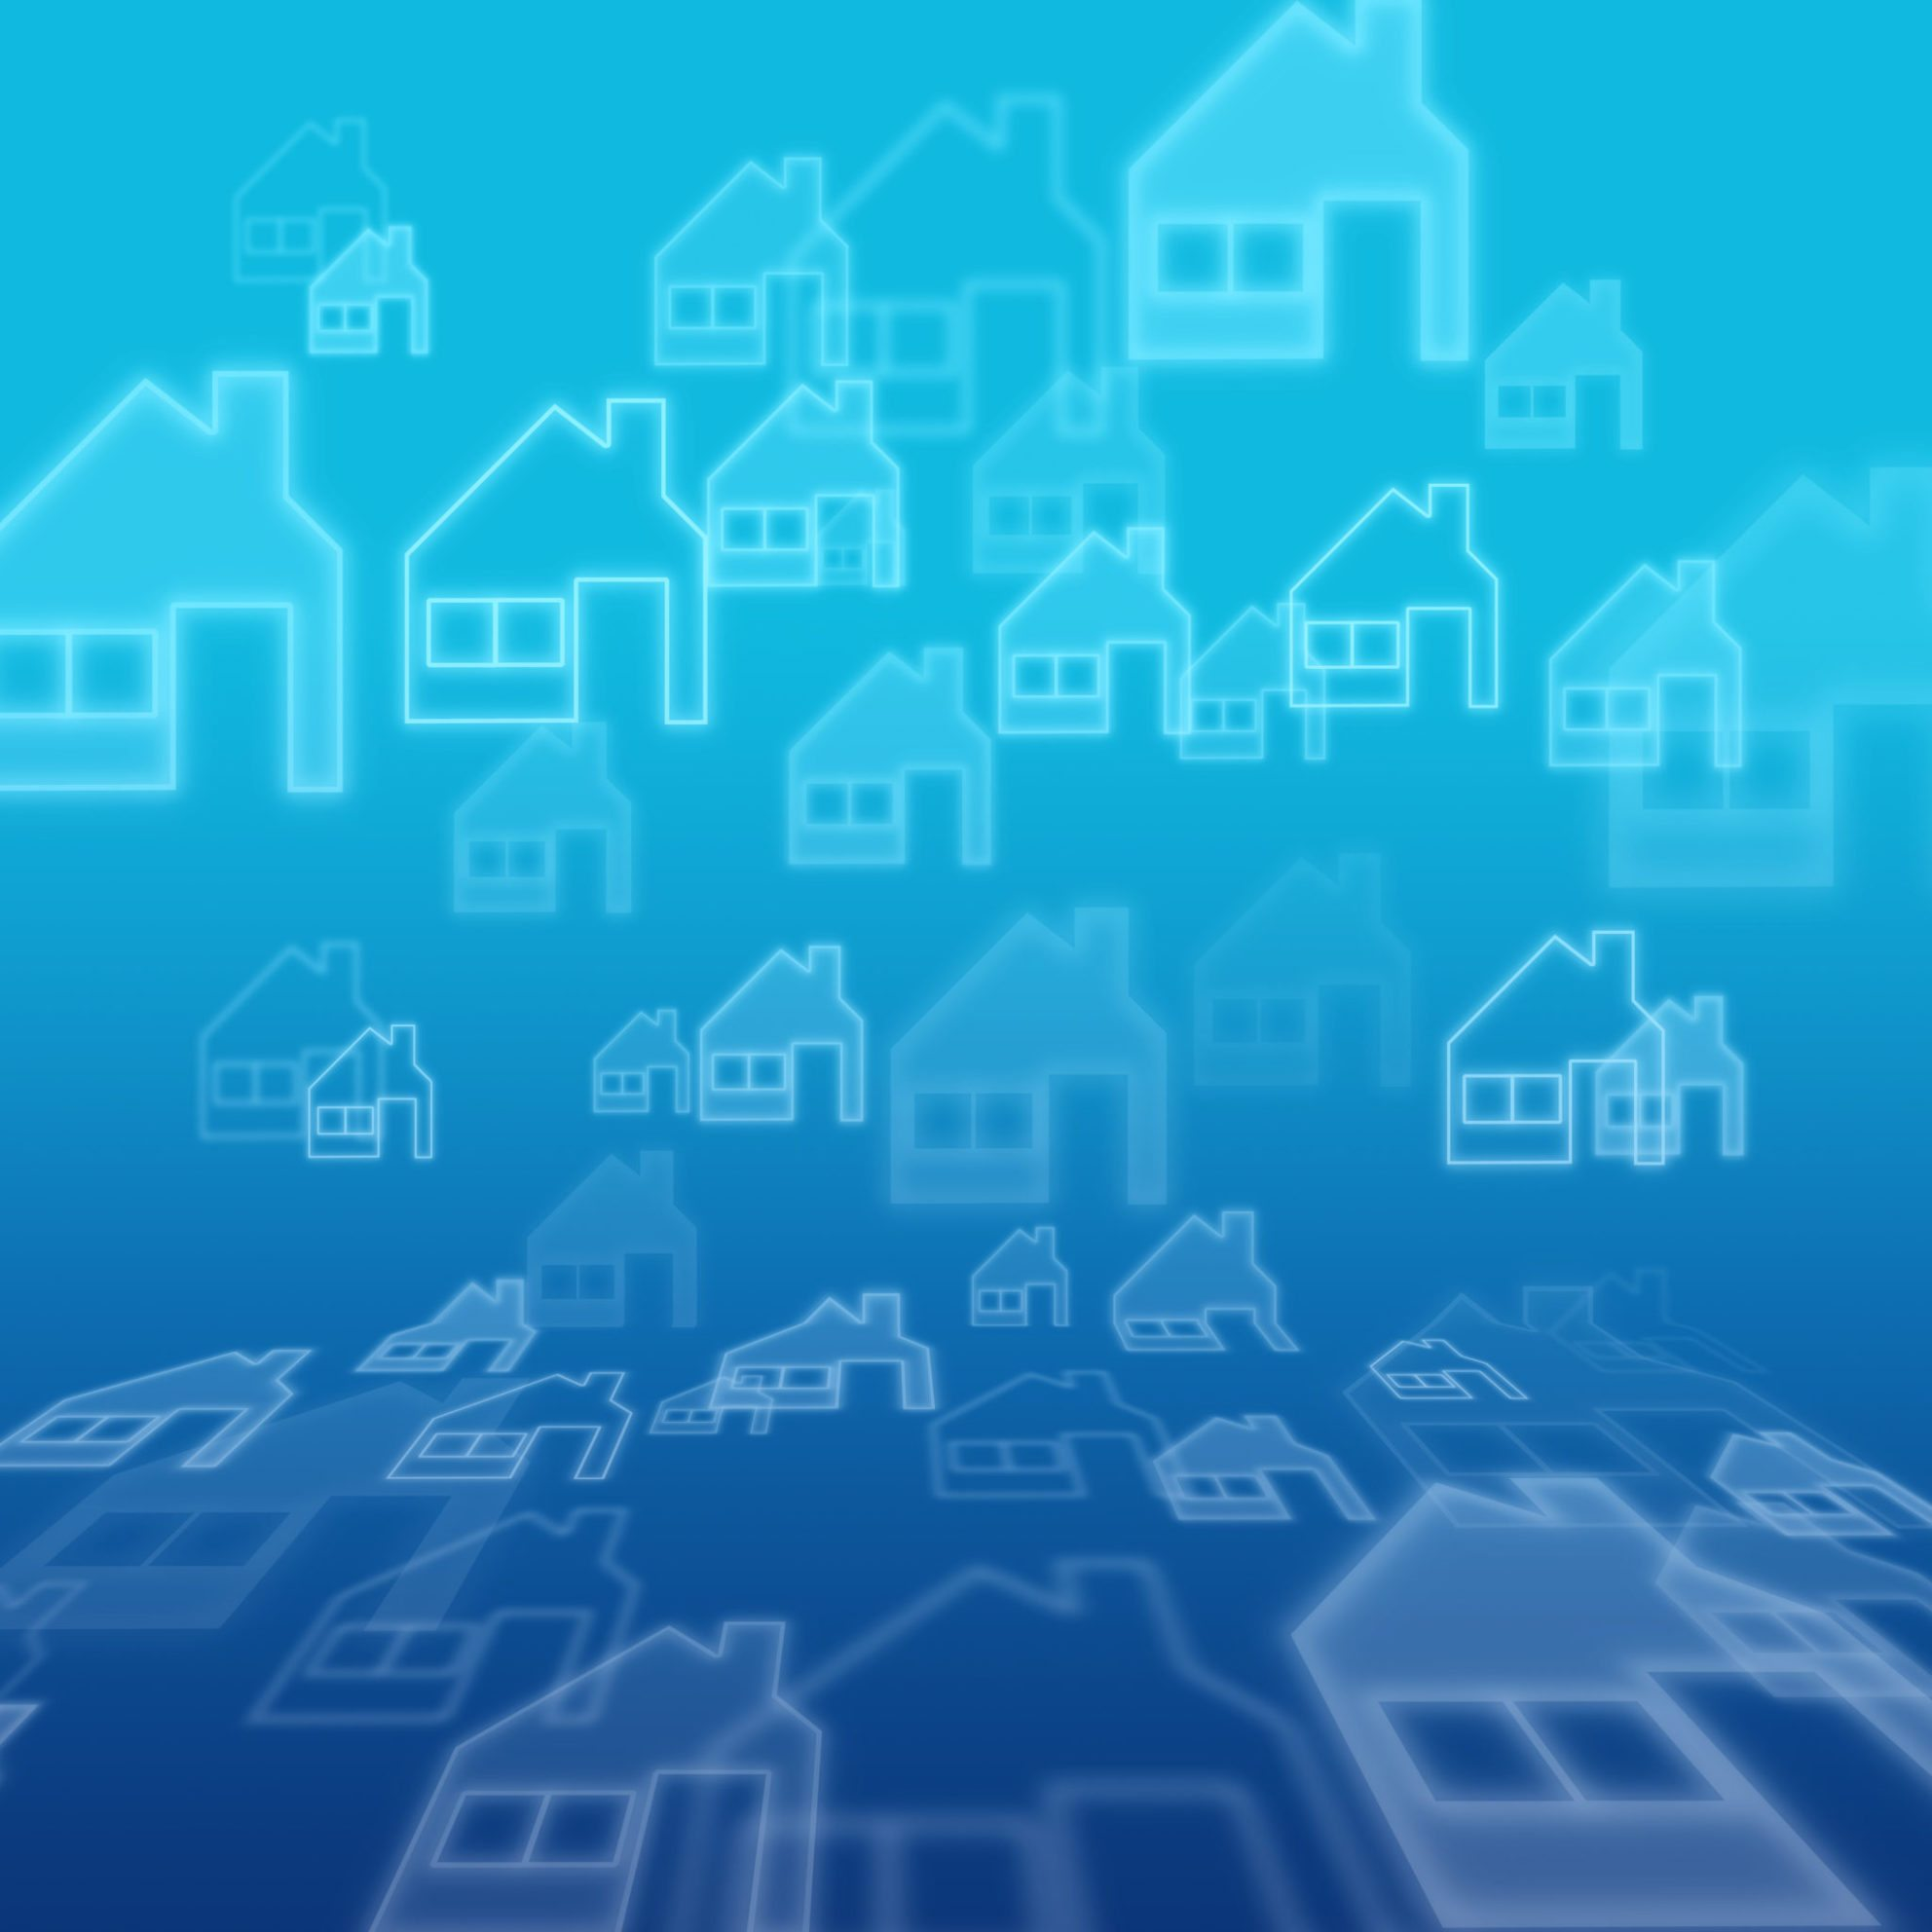 Buyers' concerns about the economy may hold back housing